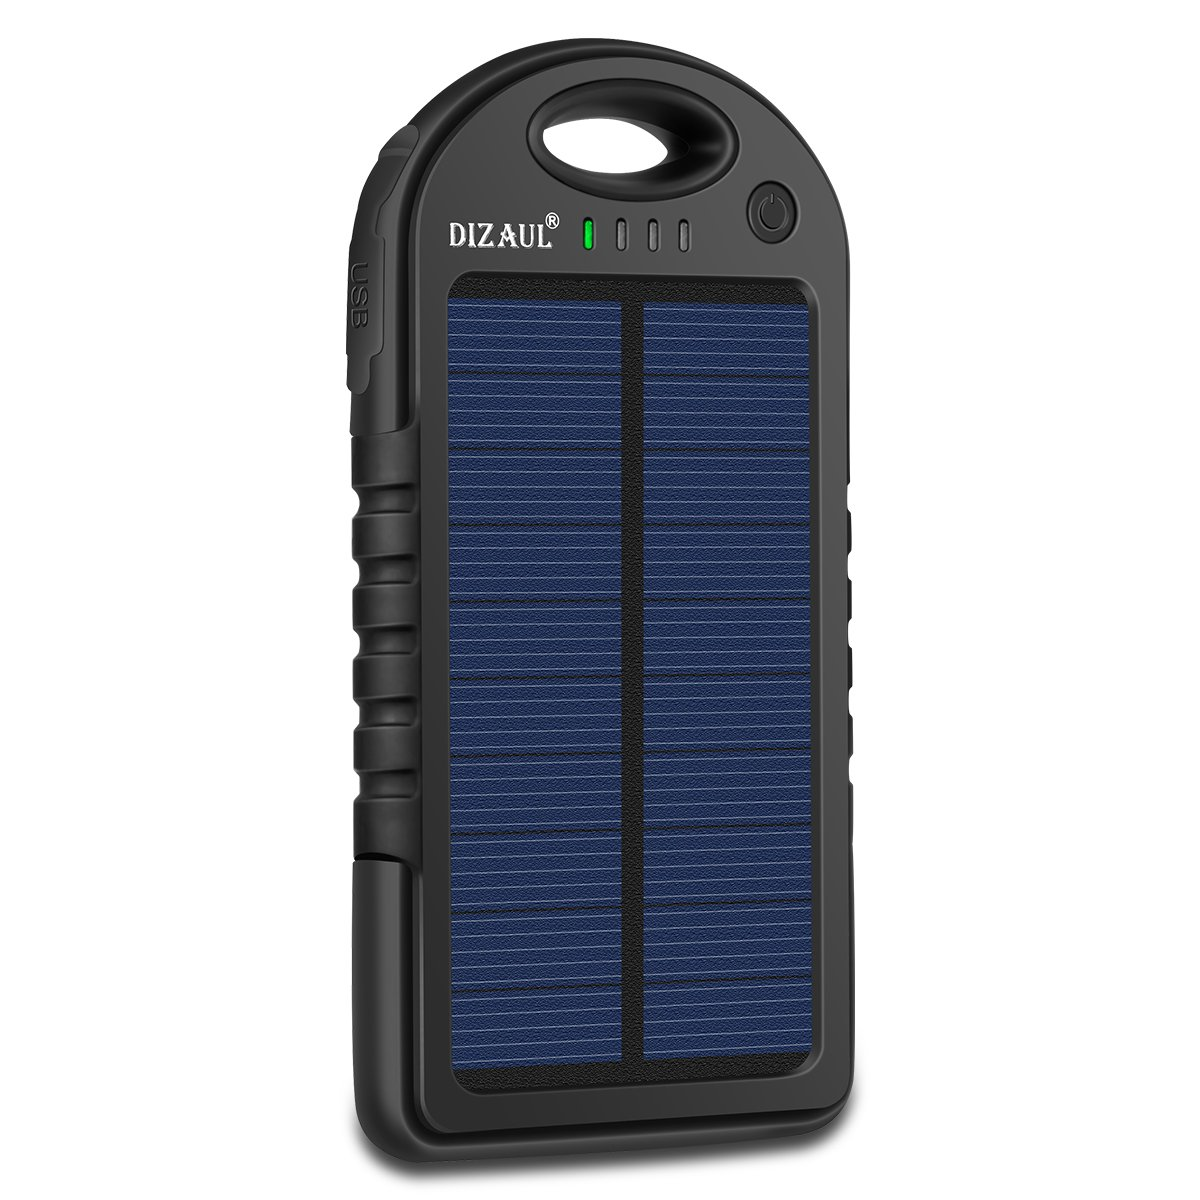 Portable Solar Power Bank - Waterproof/Shockproof Battery Bank for Cell Phone